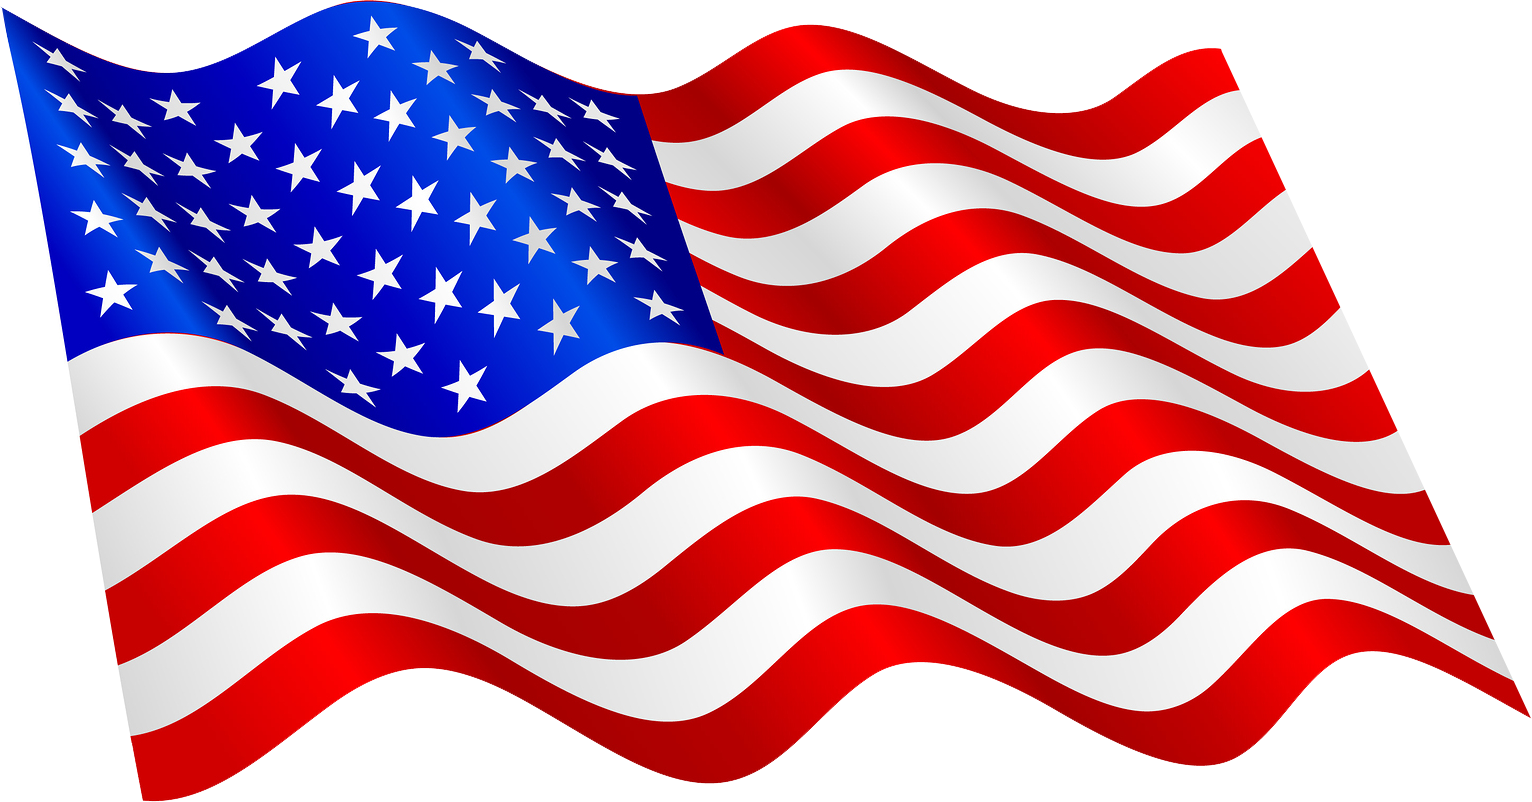 United States of America Flag PNG Transparent Images - American Flag PNG Transparent